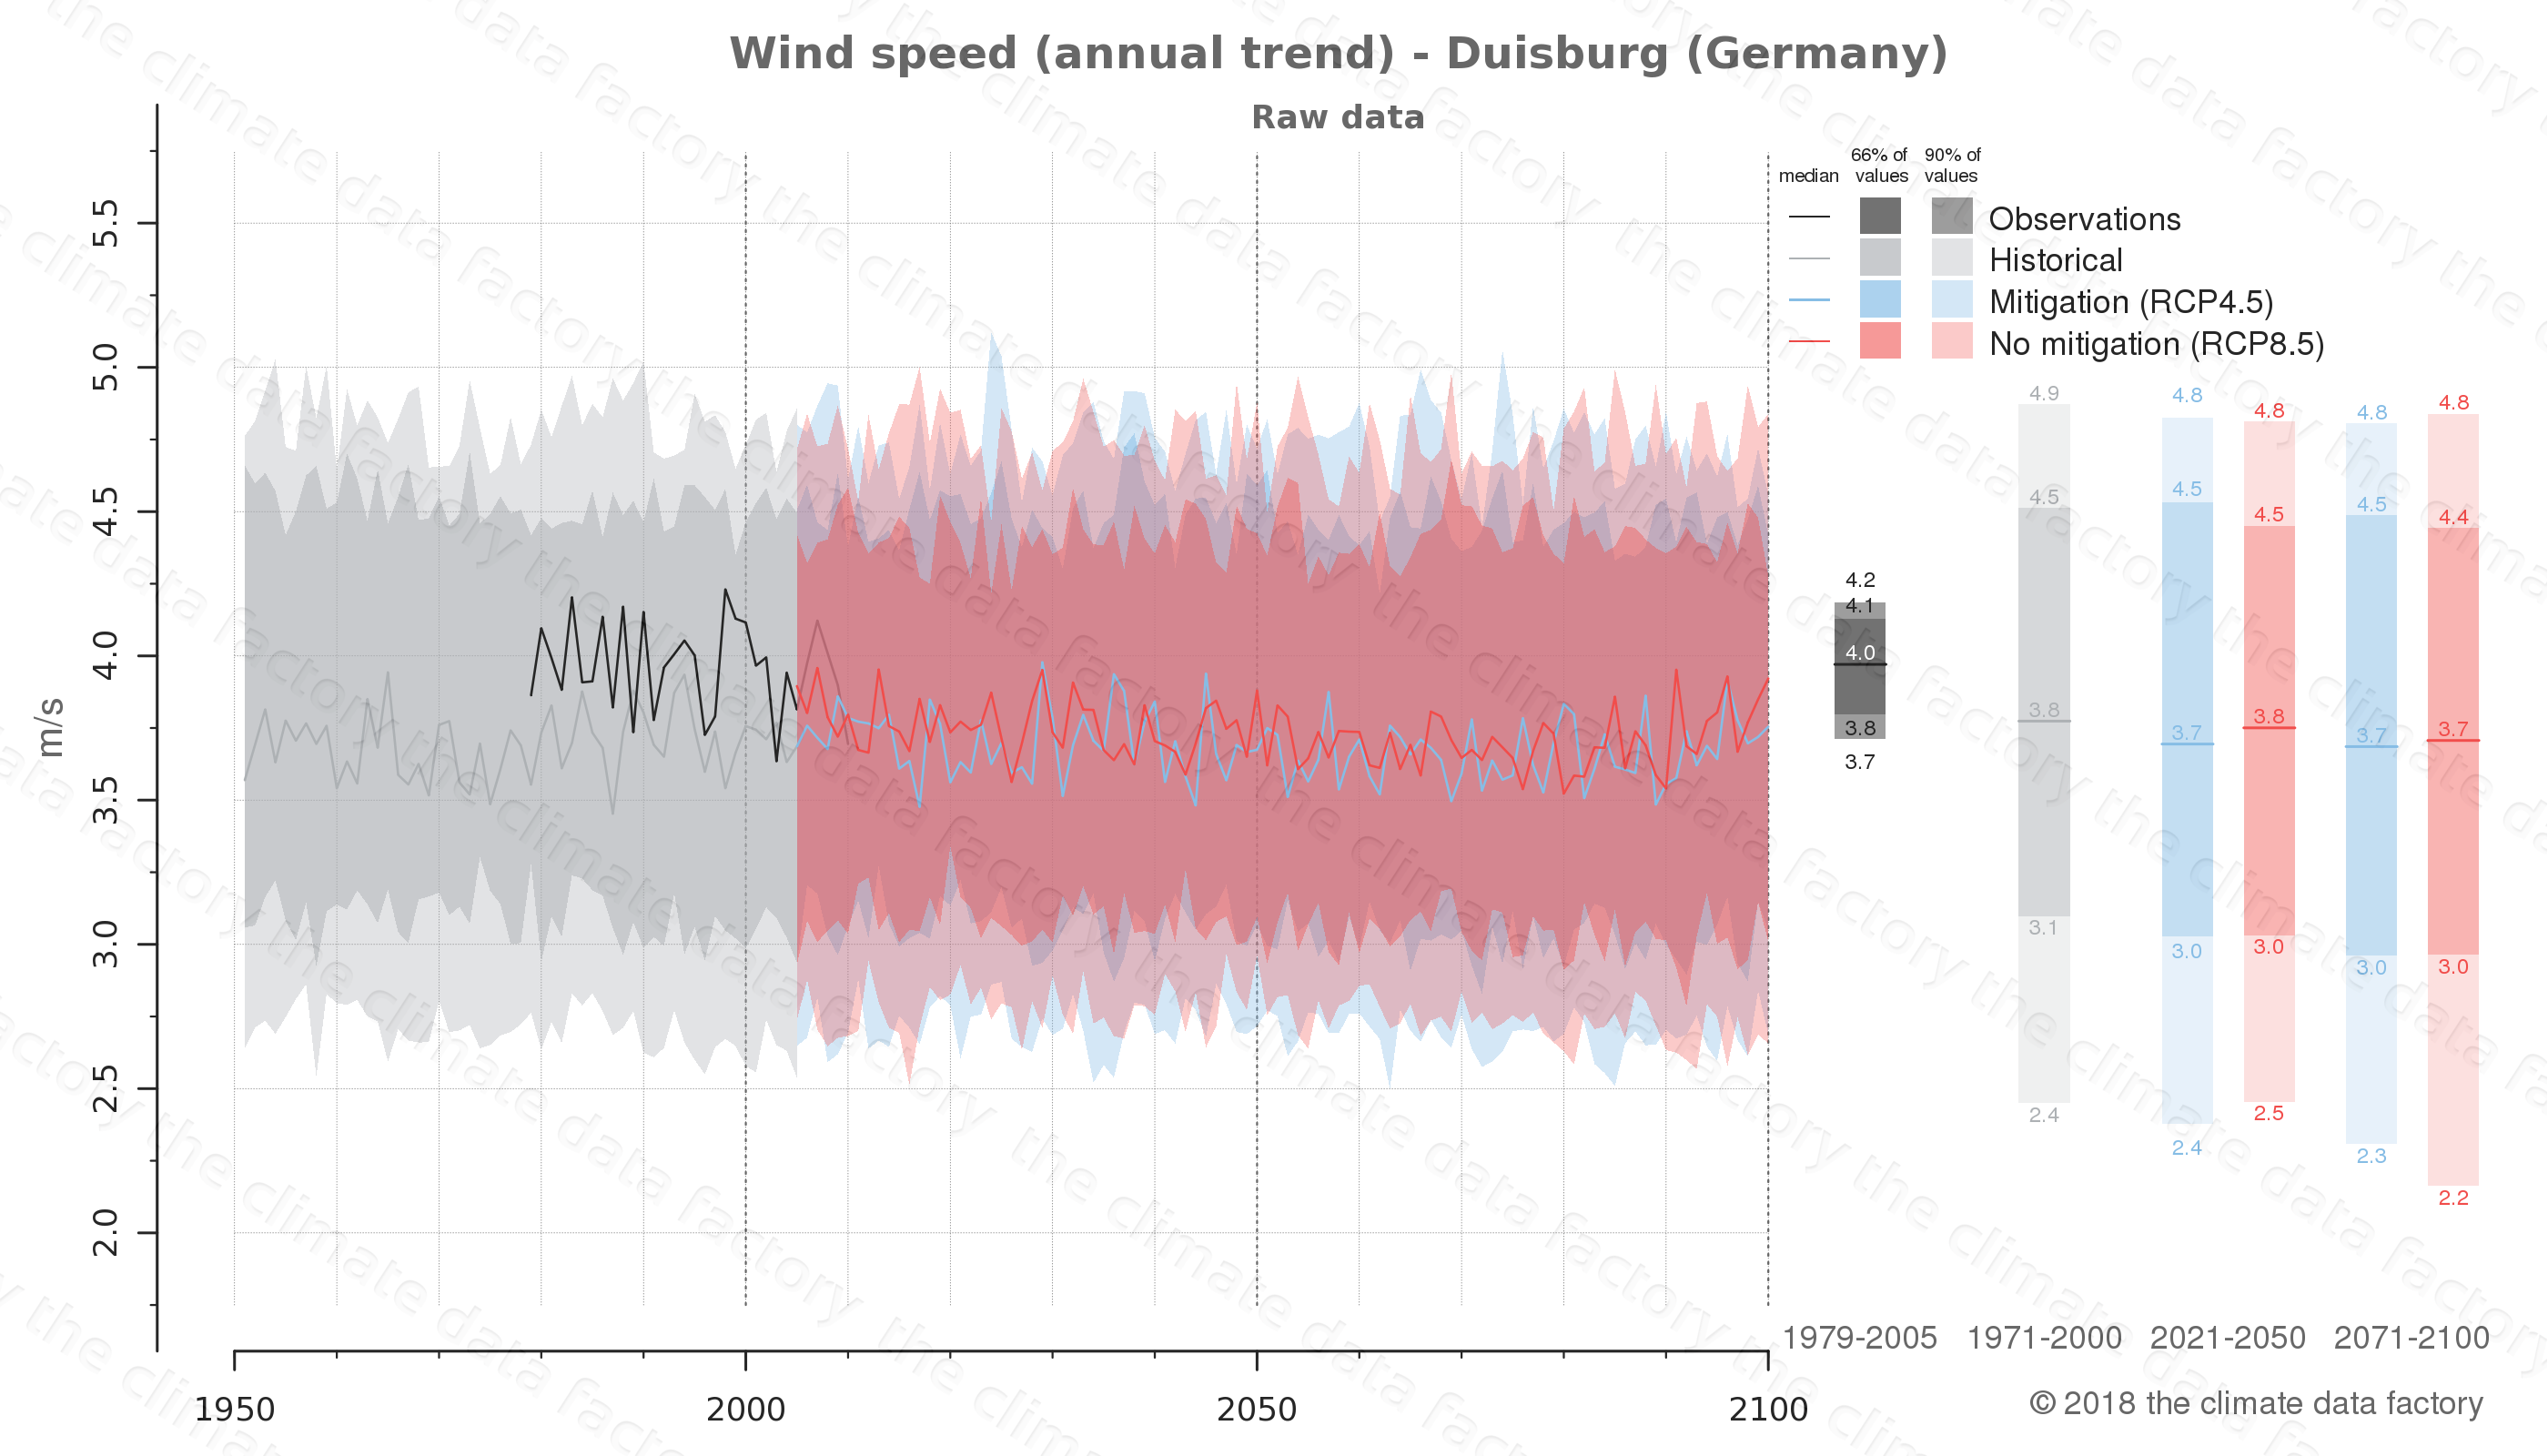 climate change data policy adaptation climate graph city data wind-speed duisburg germany